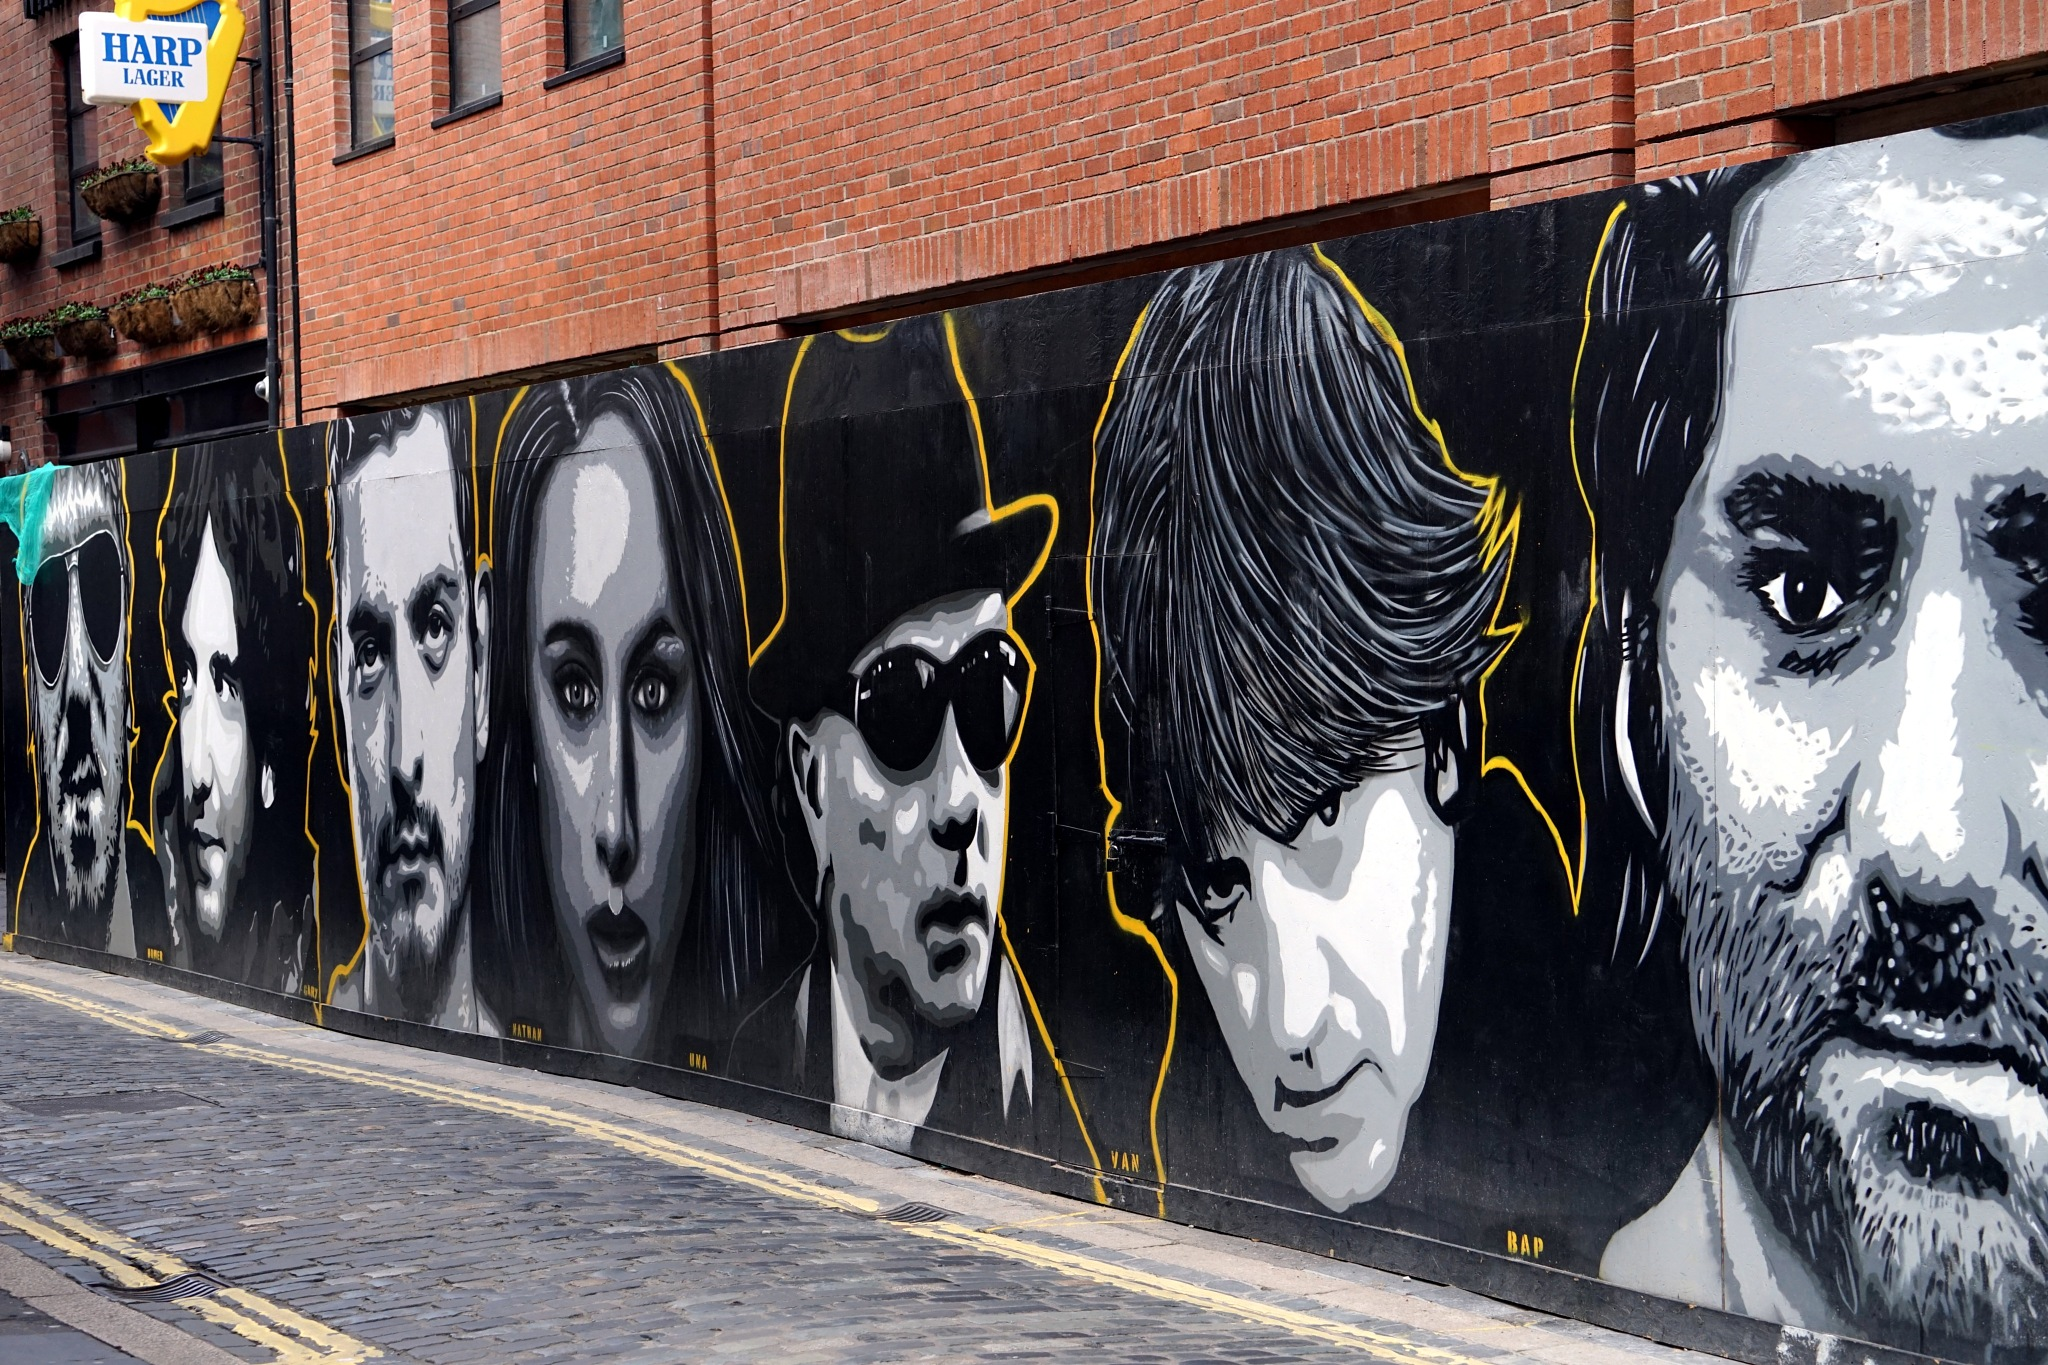 Giant mural featuring Irish Musiciens - Cathedral Quarter, Belfast by John Semple